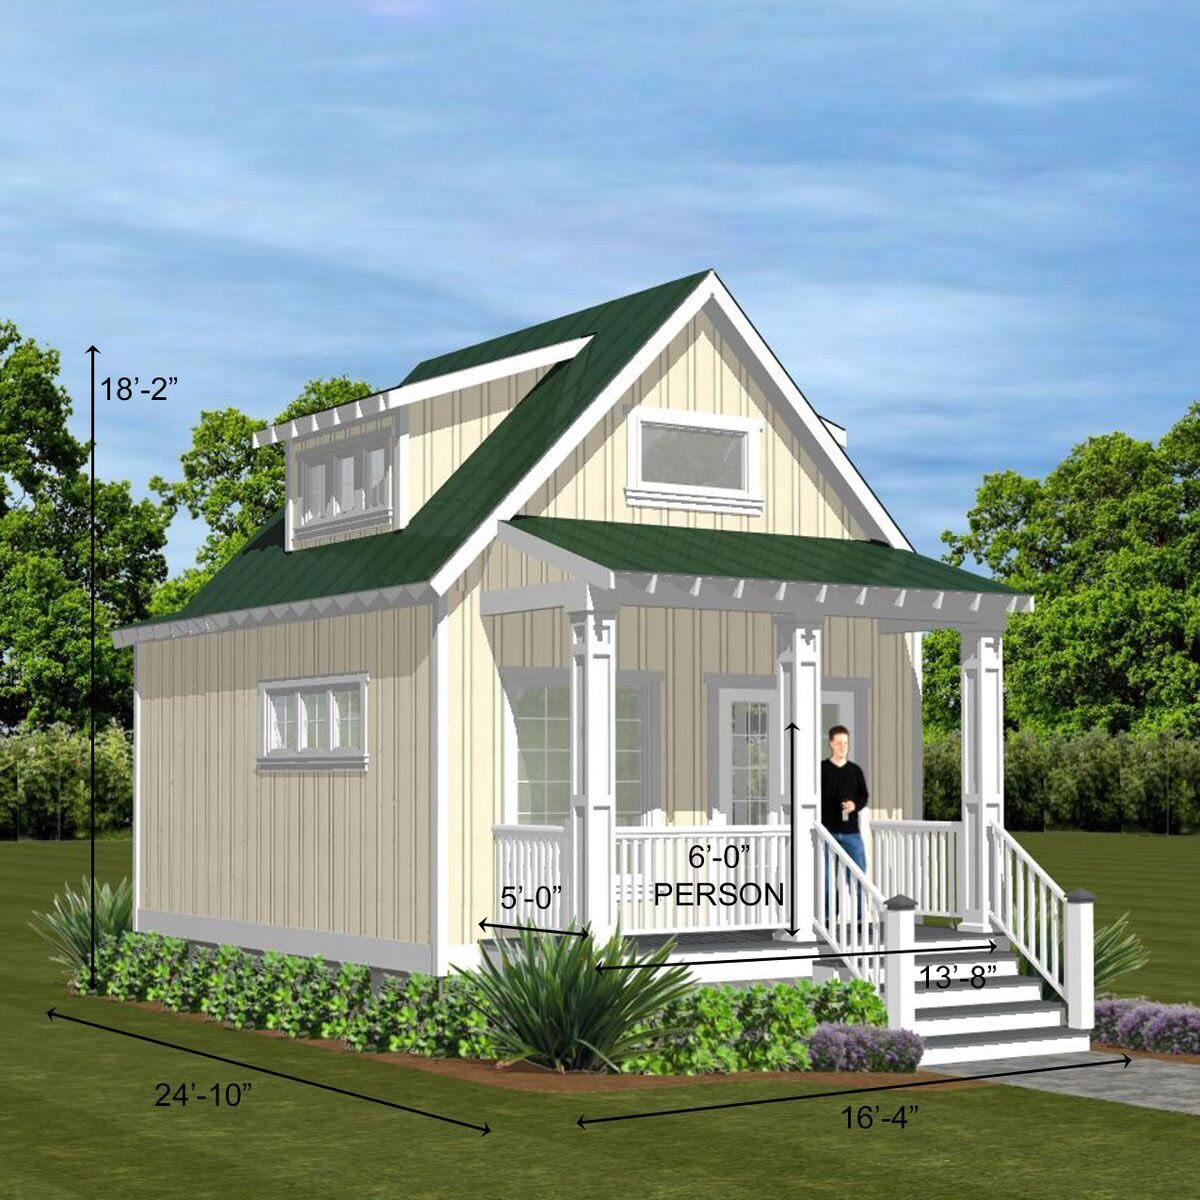 317 Aspen Crawl Creative Living Designs Llc Small Beach Houses Small House Guest Cottage